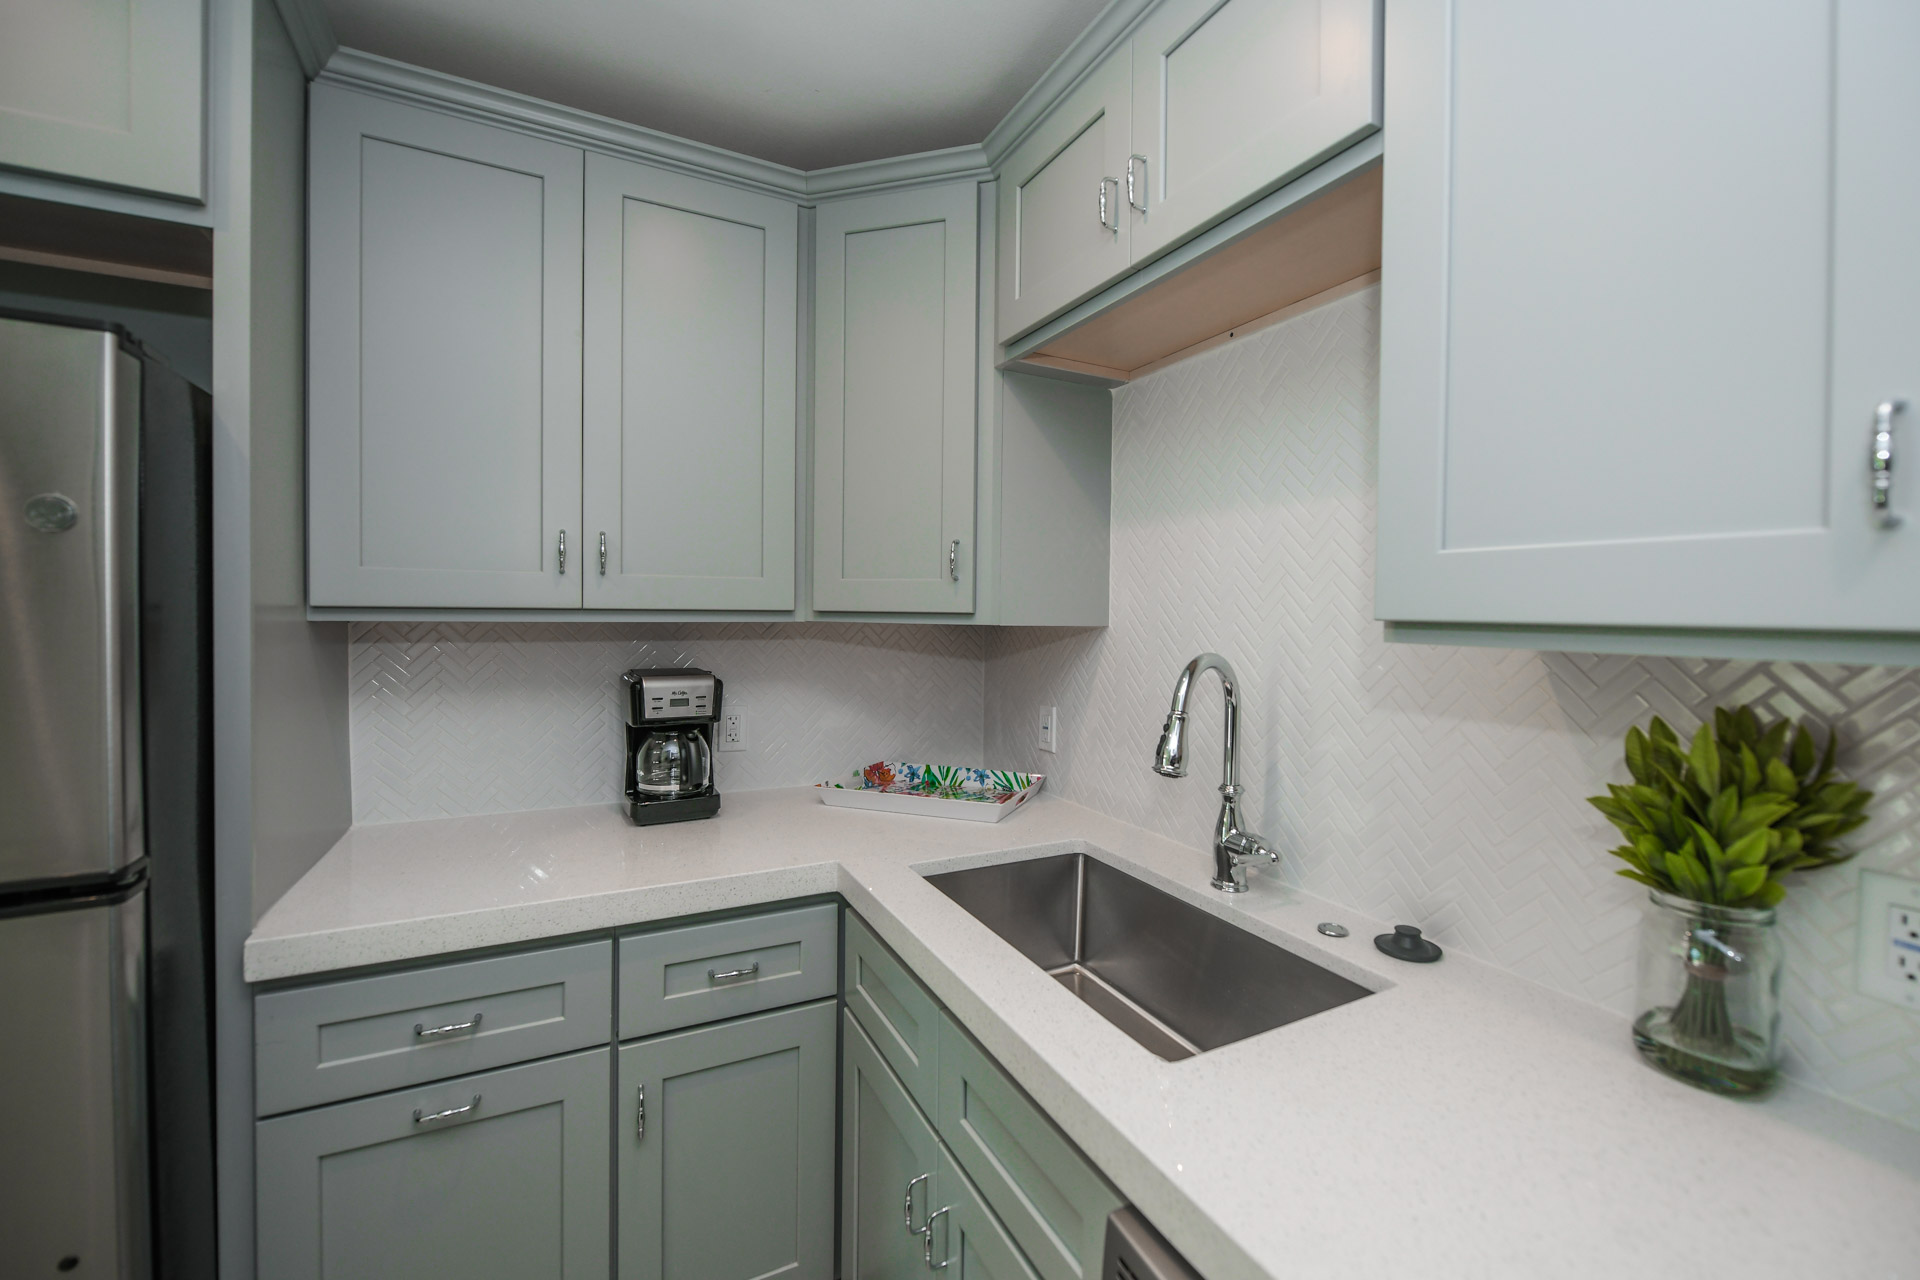 Kitchen Cabinetry and Storage